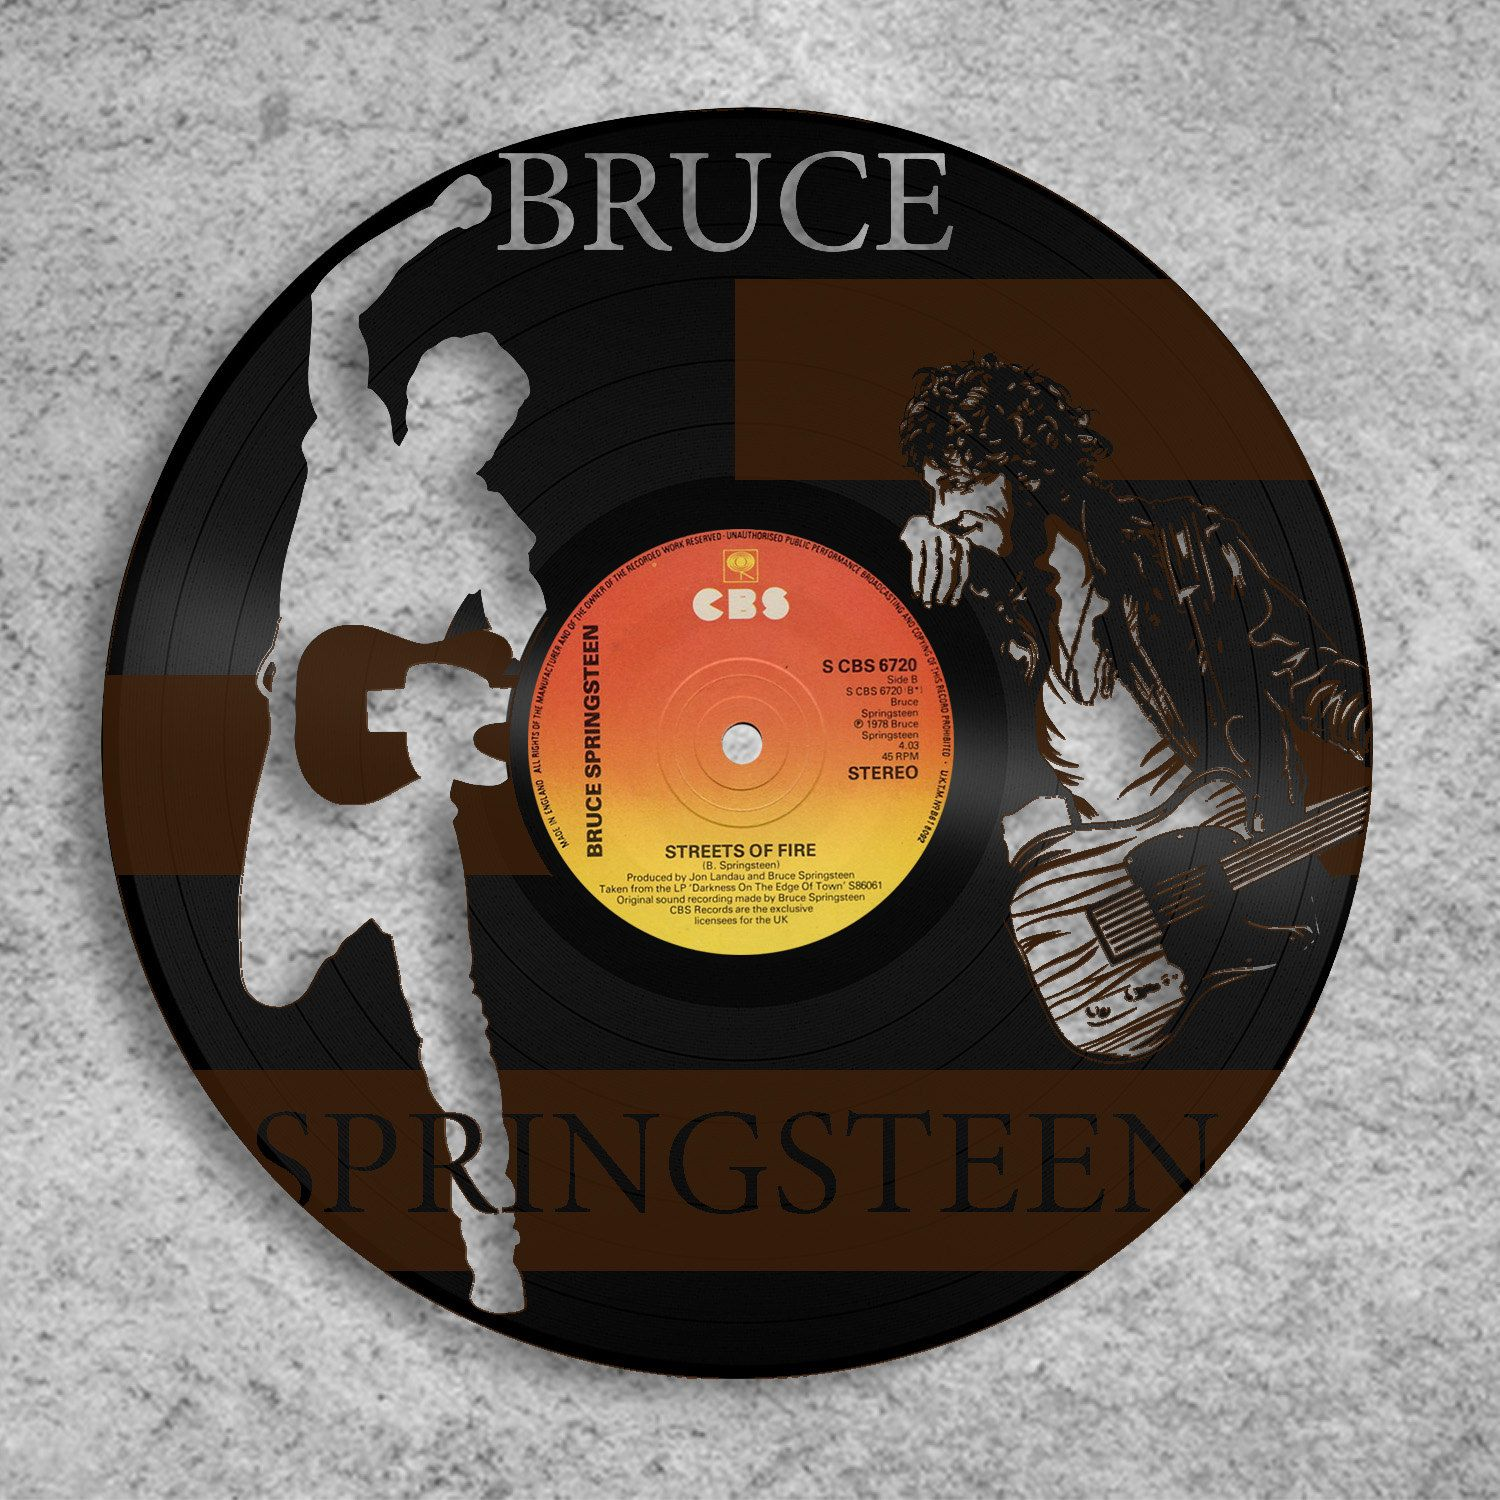 Bruce Springsteen Pictures Freaking News Bruce Springsteen Album Covers Bruce Springsteen Albums